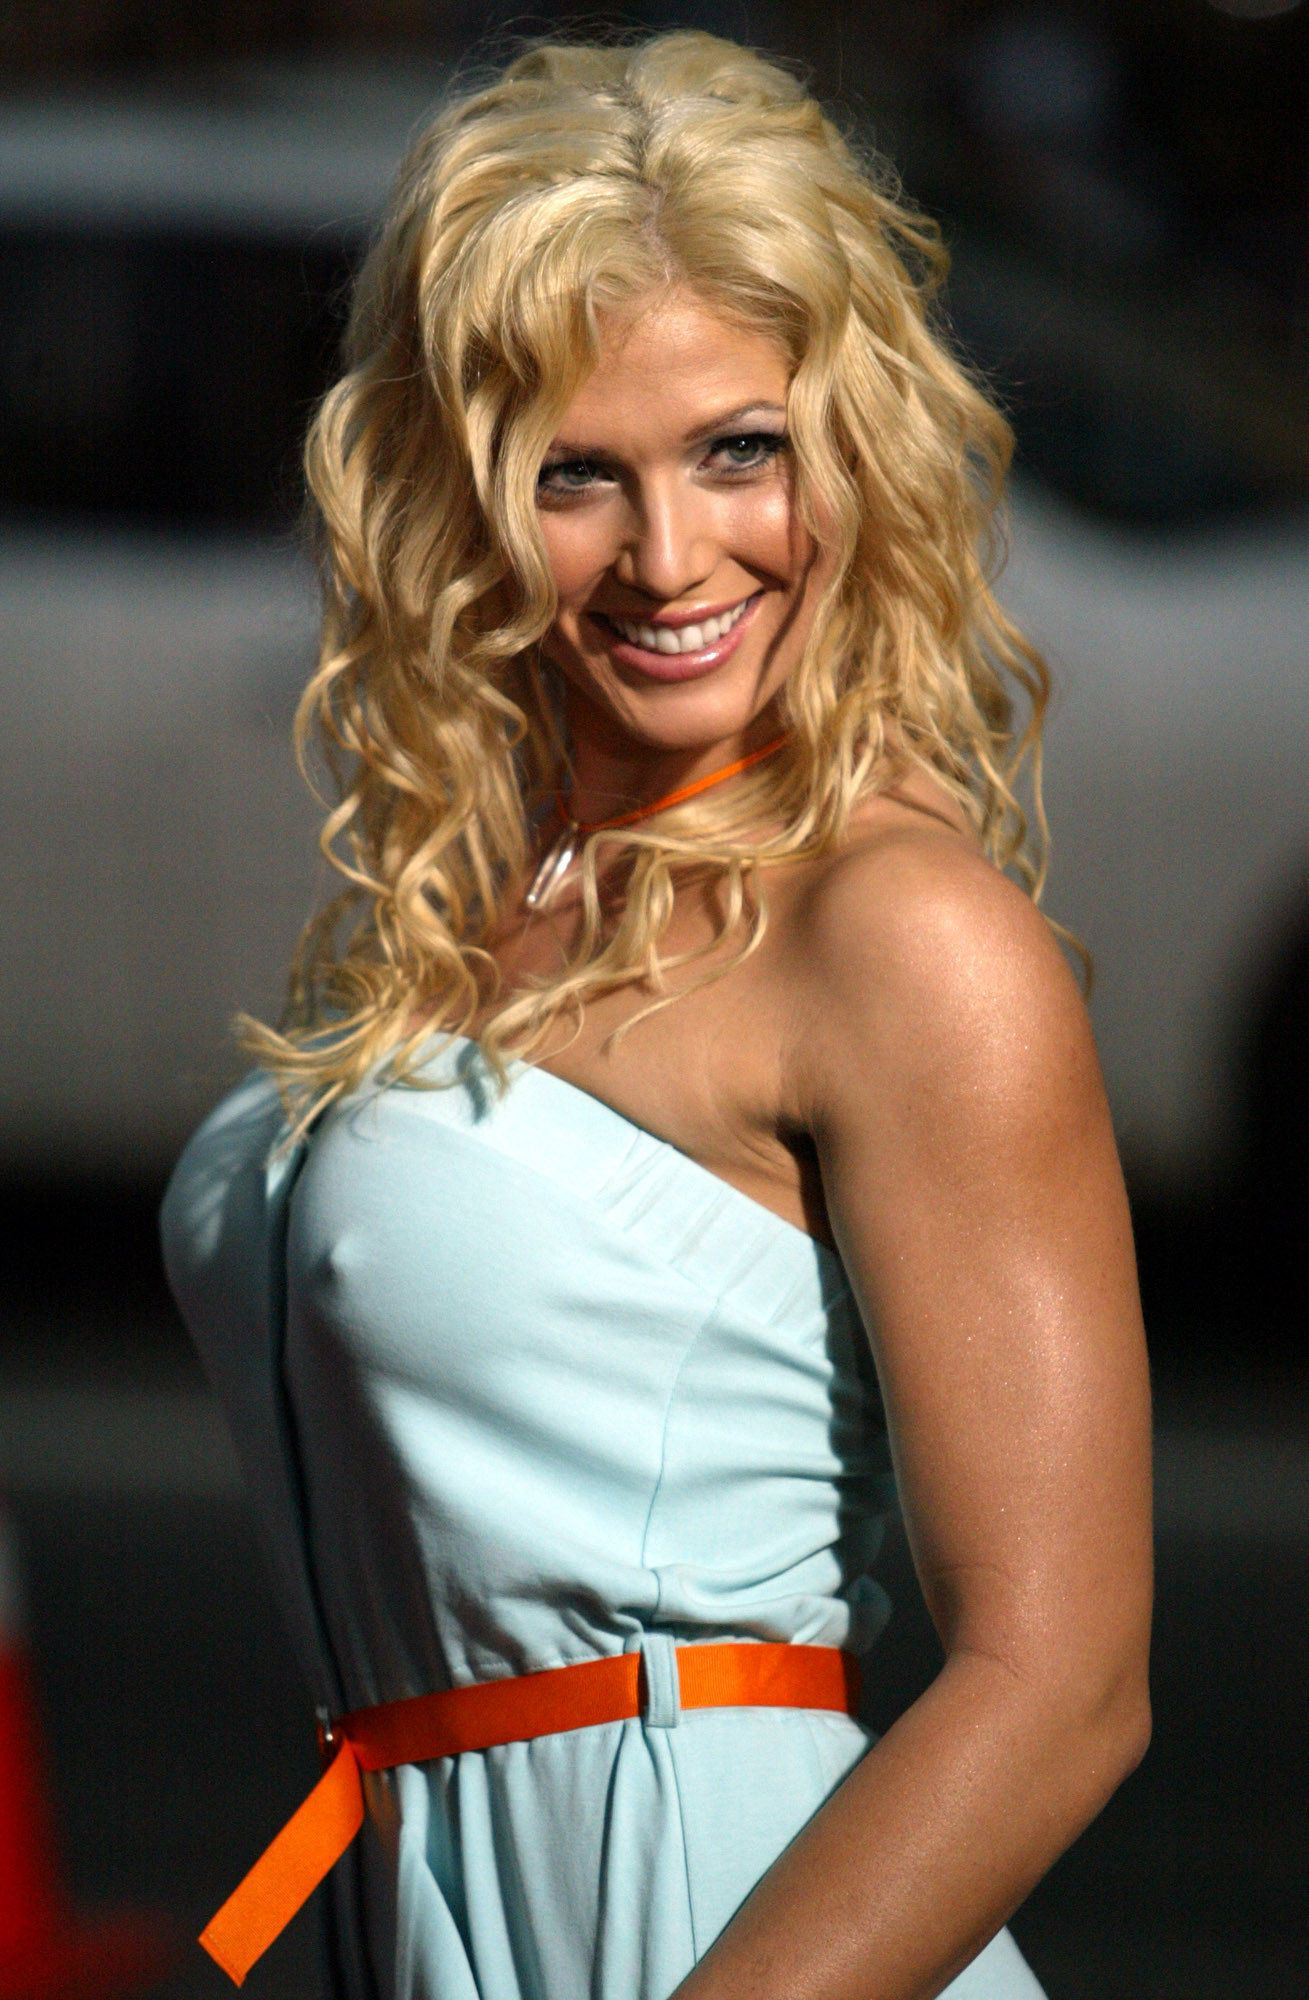 Hot Torrie Wilson naked (52 foto and video), Tits, Paparazzi, Boobs, panties 2006